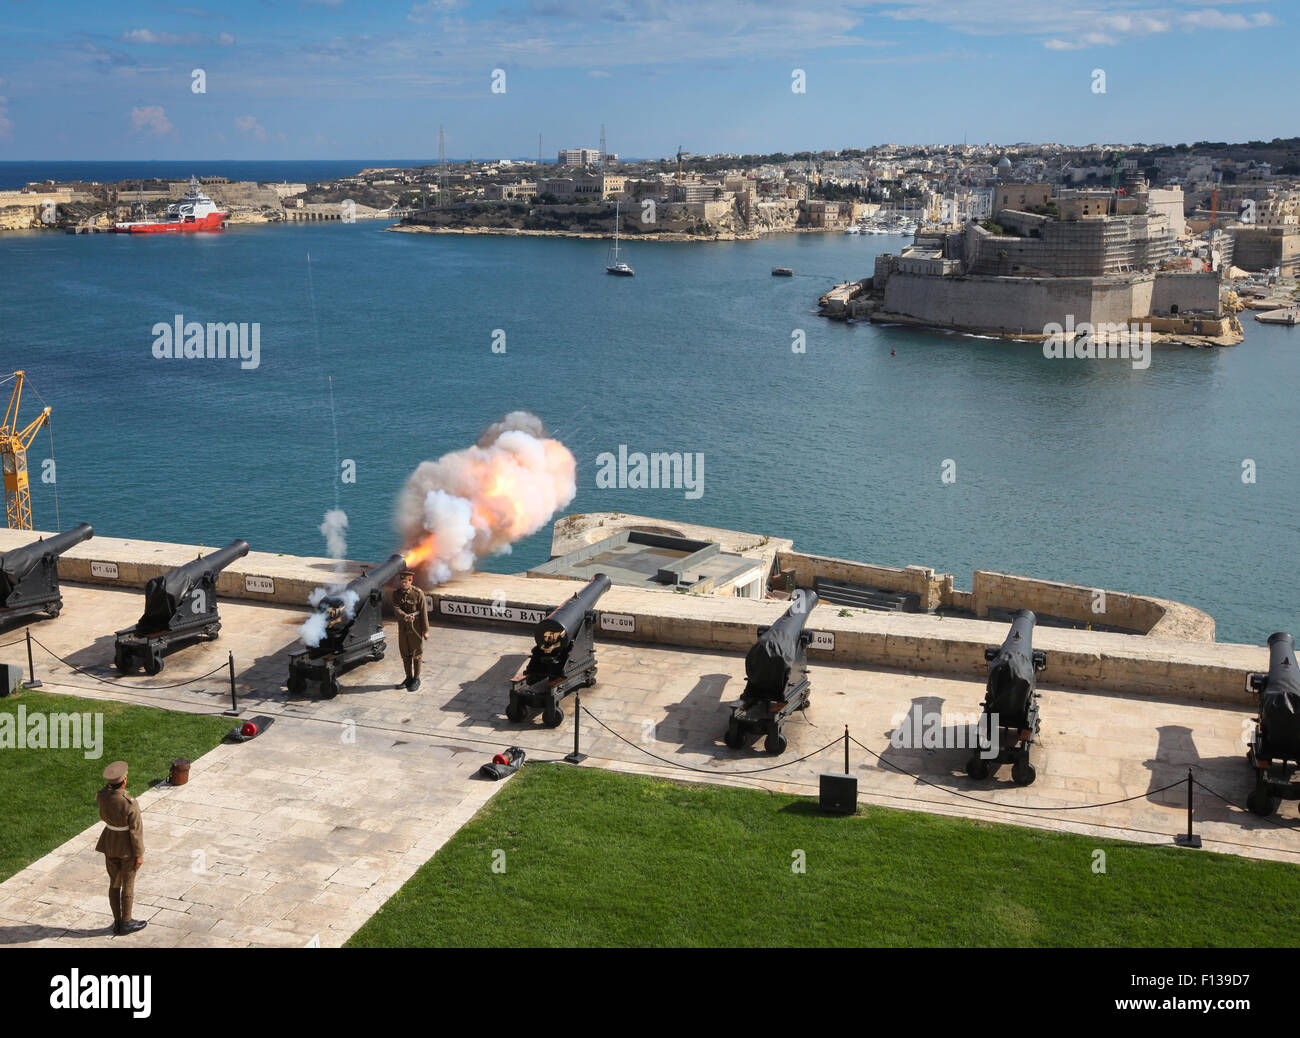 Firing the noon day gun at Saluting Battery, Upper Barracca Gardens, and Grand Harbour, Valletta, Malta - Stock Image